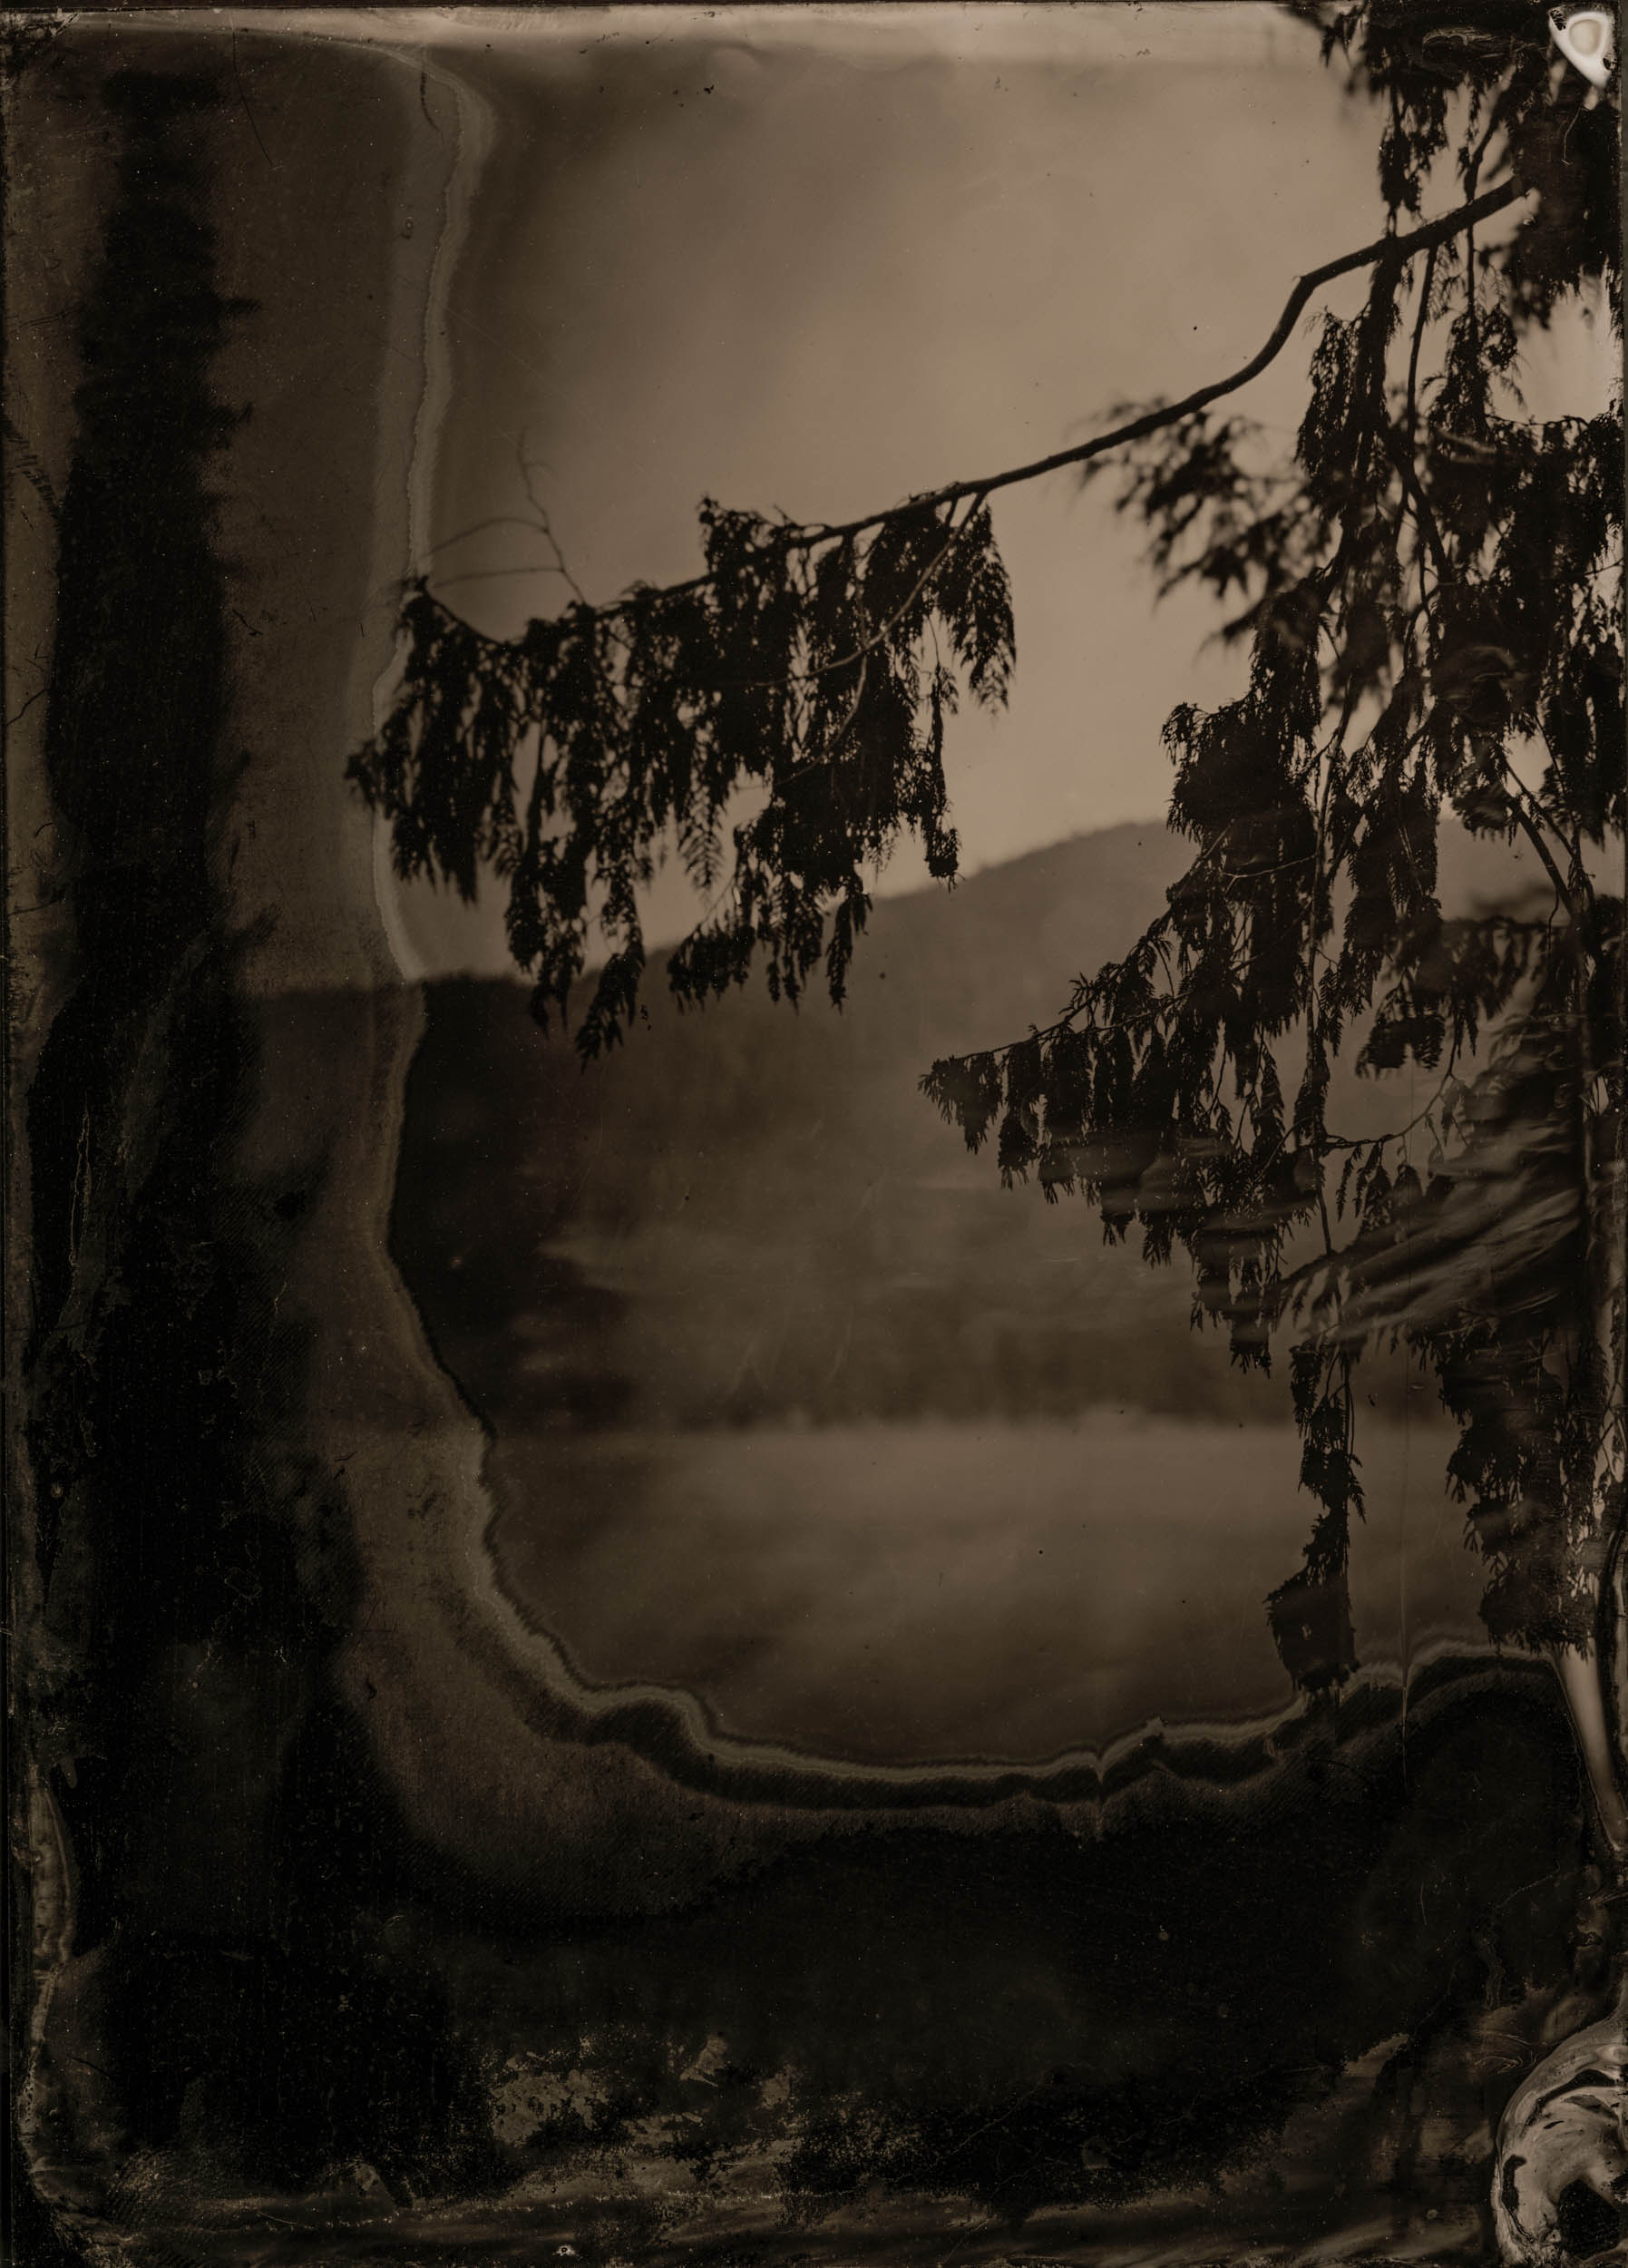 Passage, ambrotype original, archival pigment print, 40 in. x 50 in., 2018